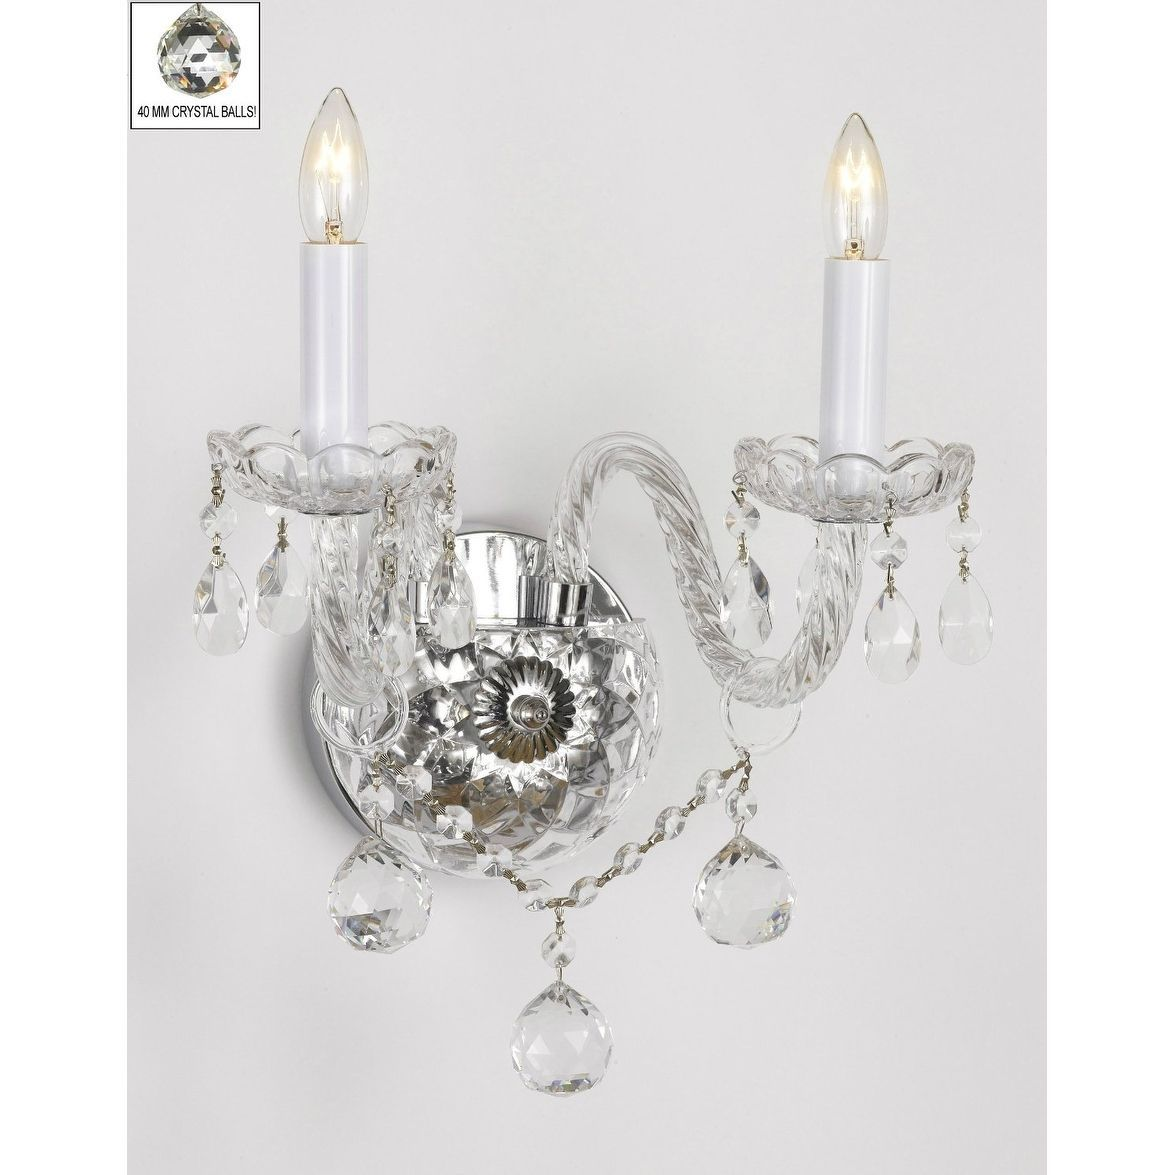 Swarovski Crystal Trimmed Wall Sconce Murano Venetian Style All